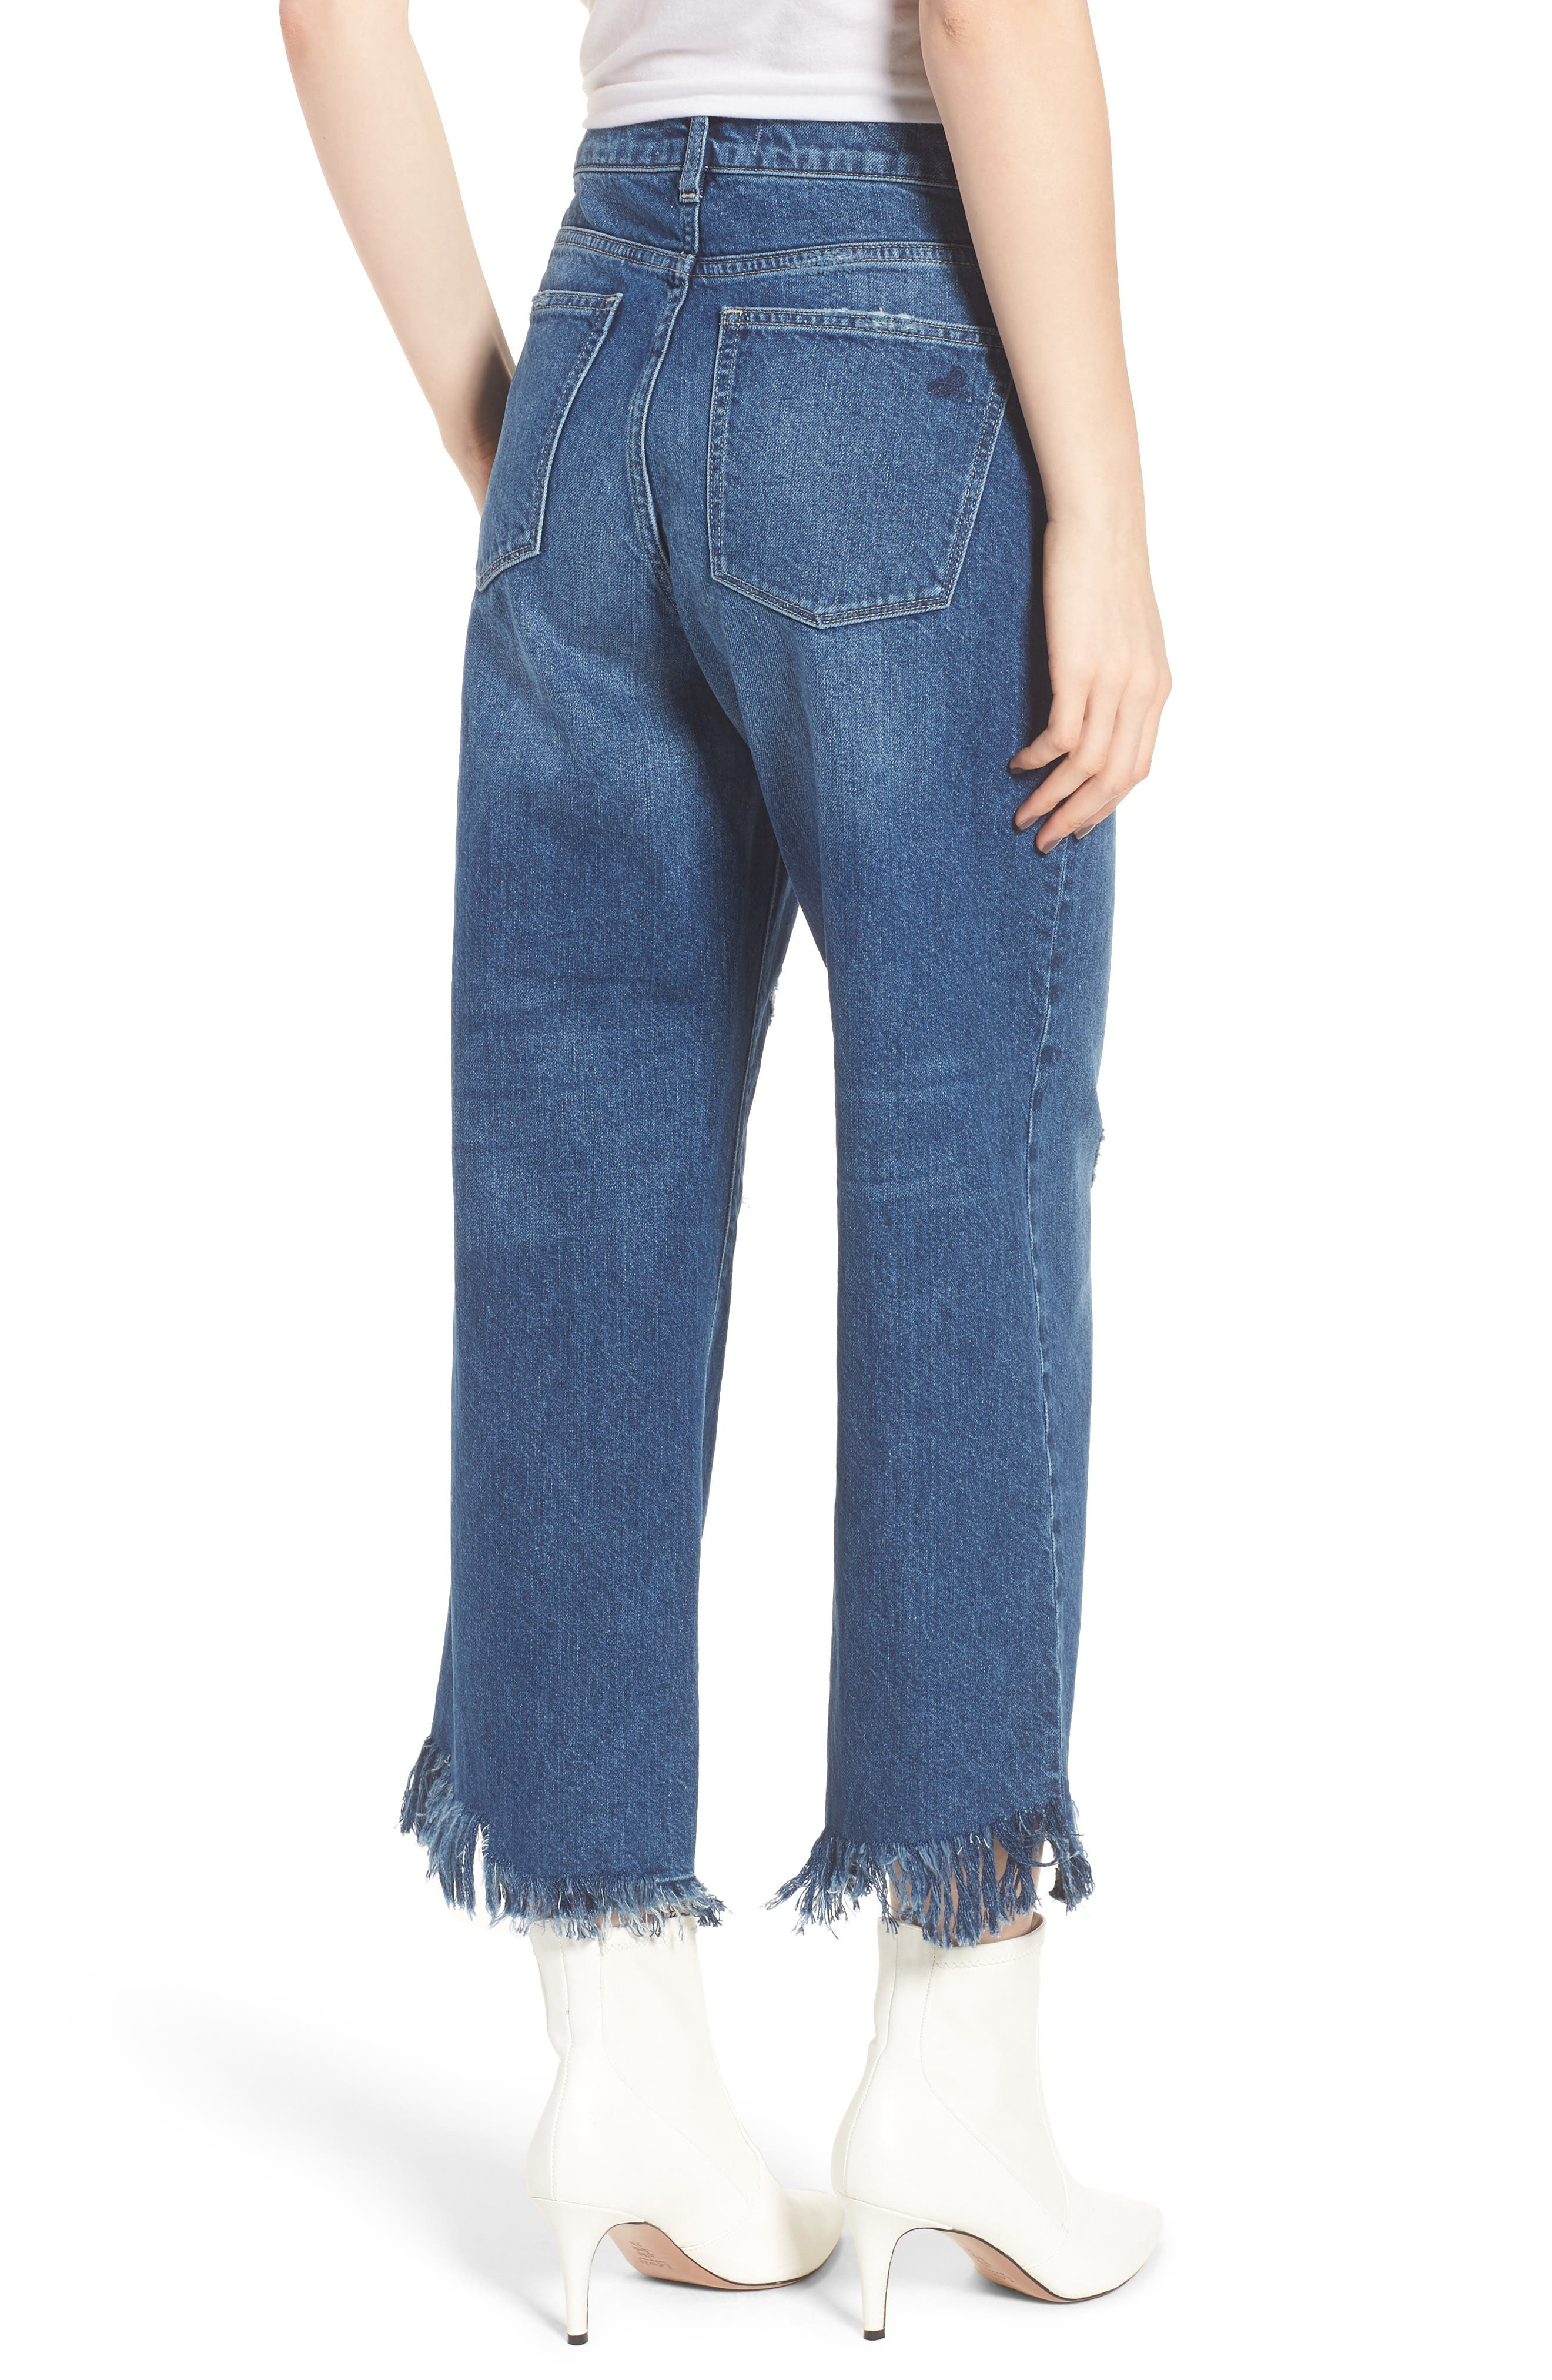 Hepburn High Waist Wide Leg Jeans,                             Alternate thumbnail 2, color,                             Goldfield